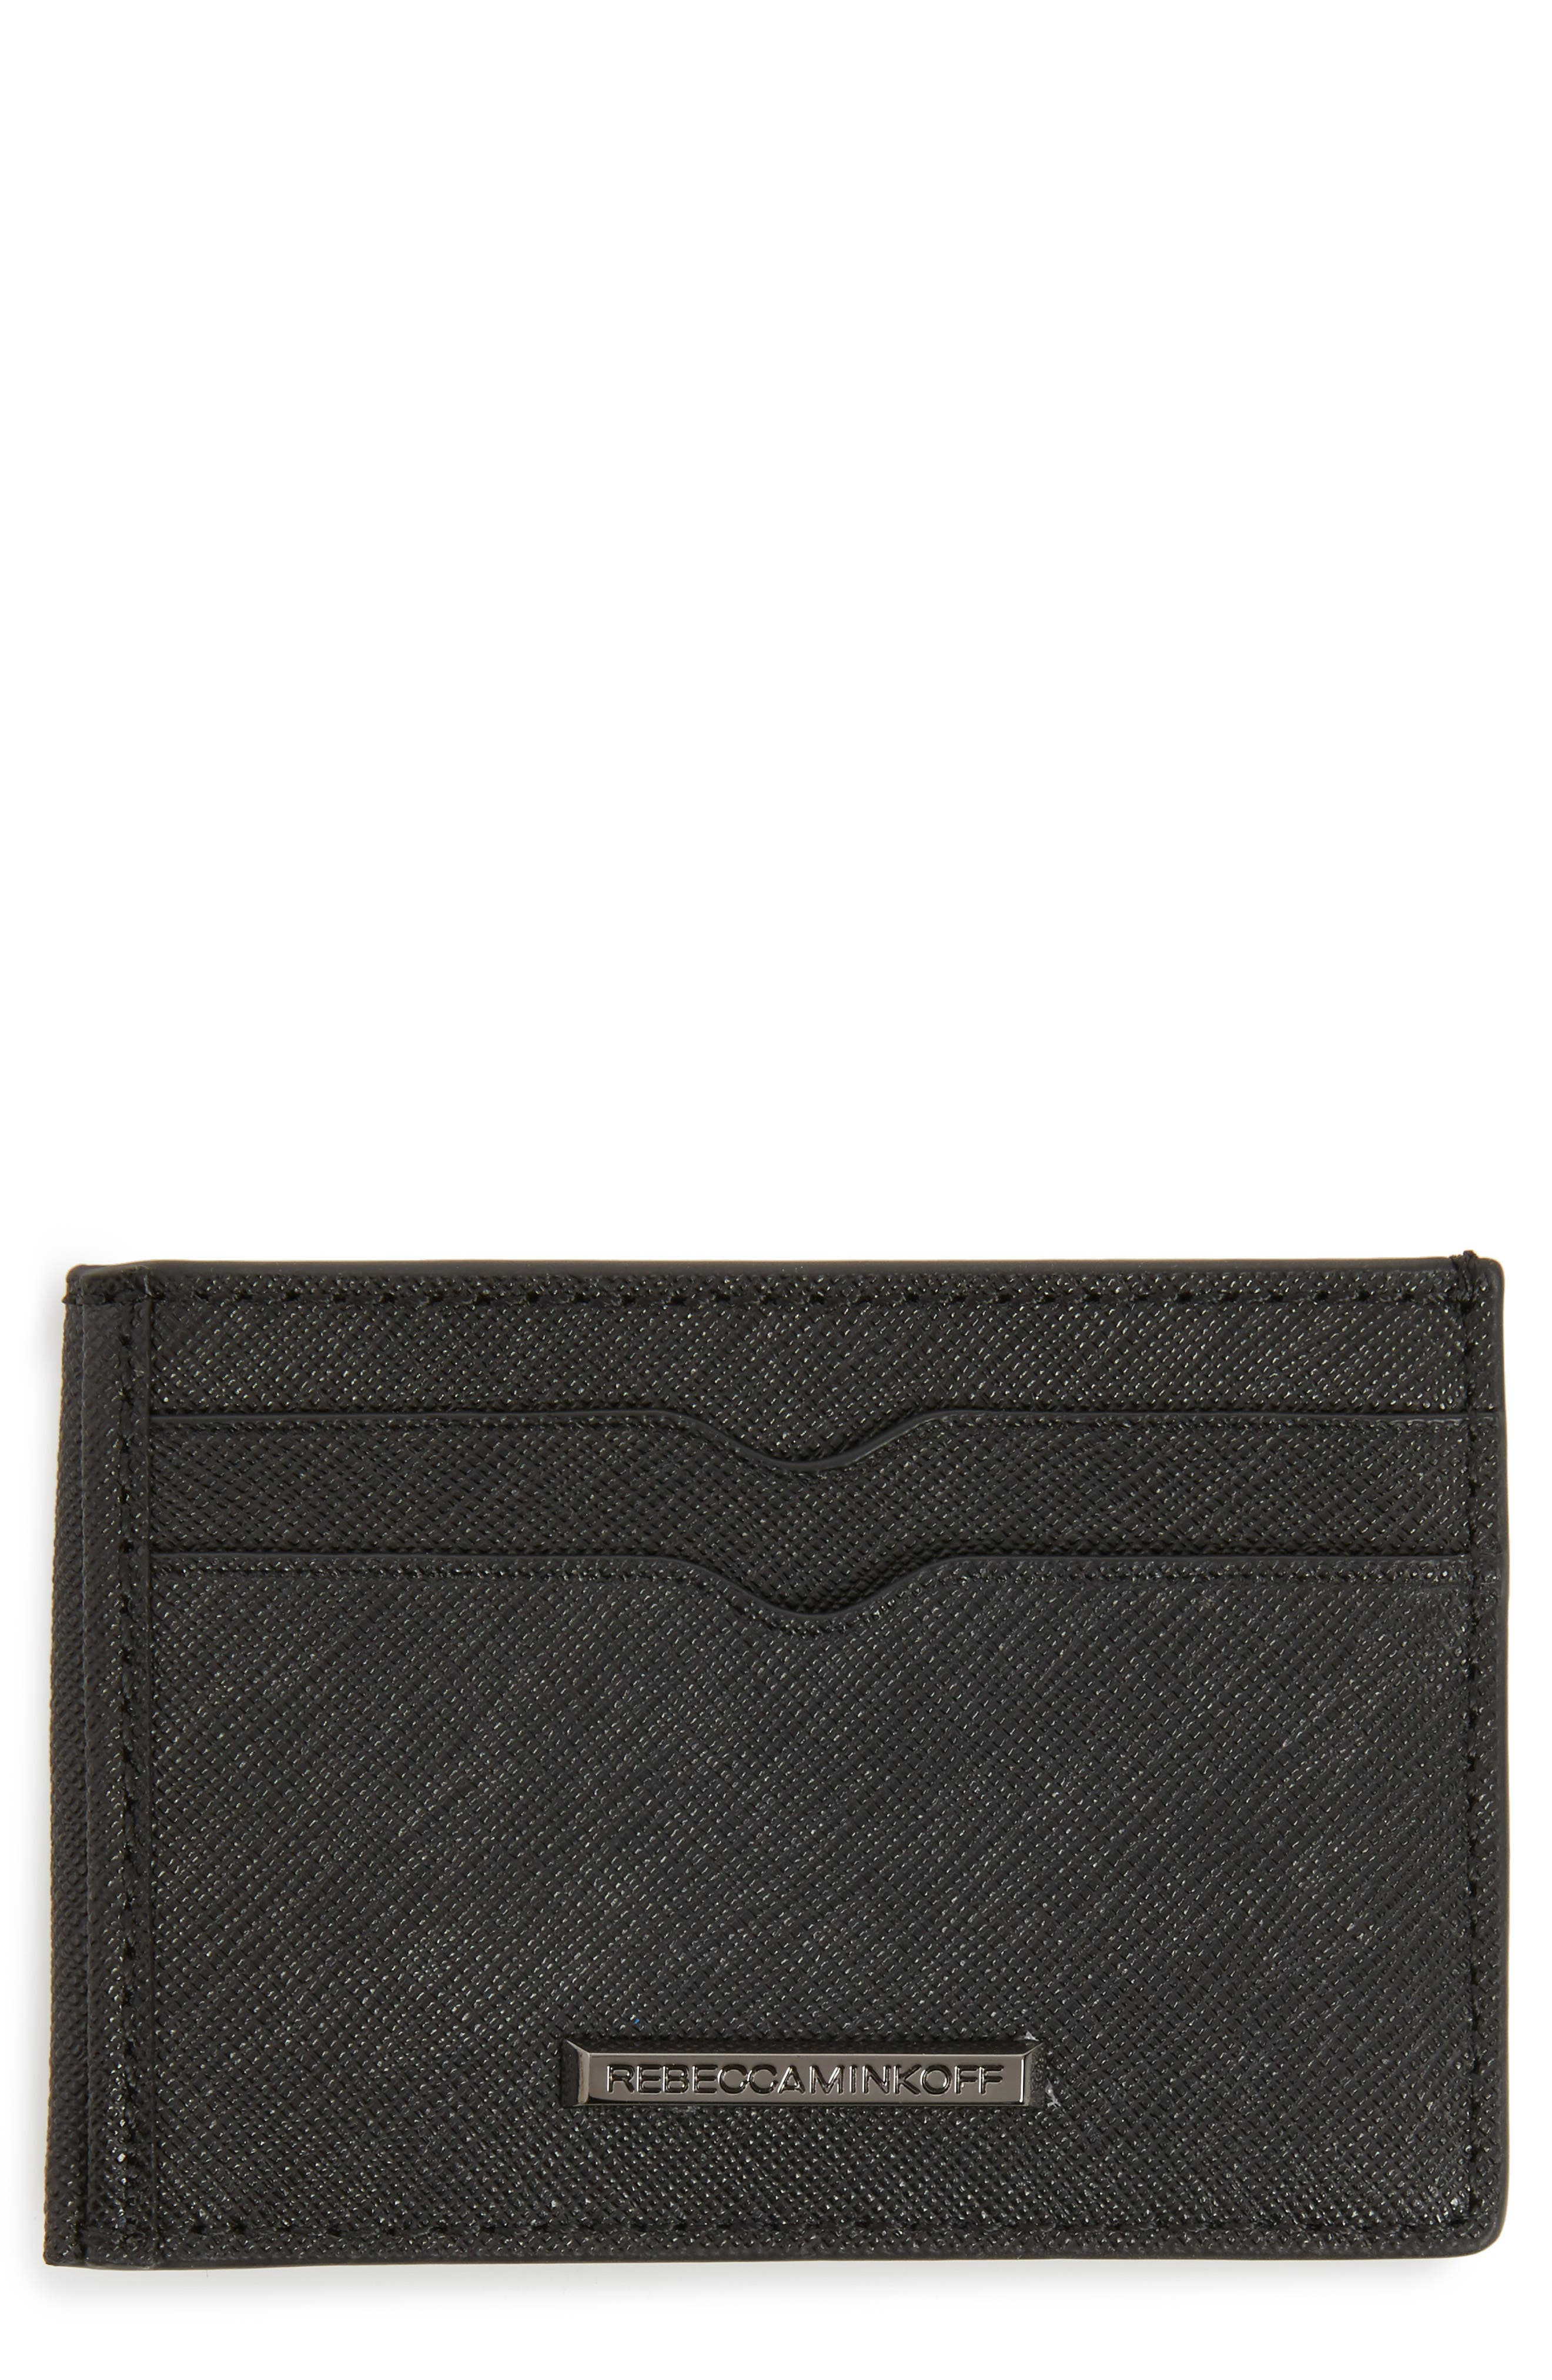 Metro Leather Card Case,                             Main thumbnail 1, color,                             001